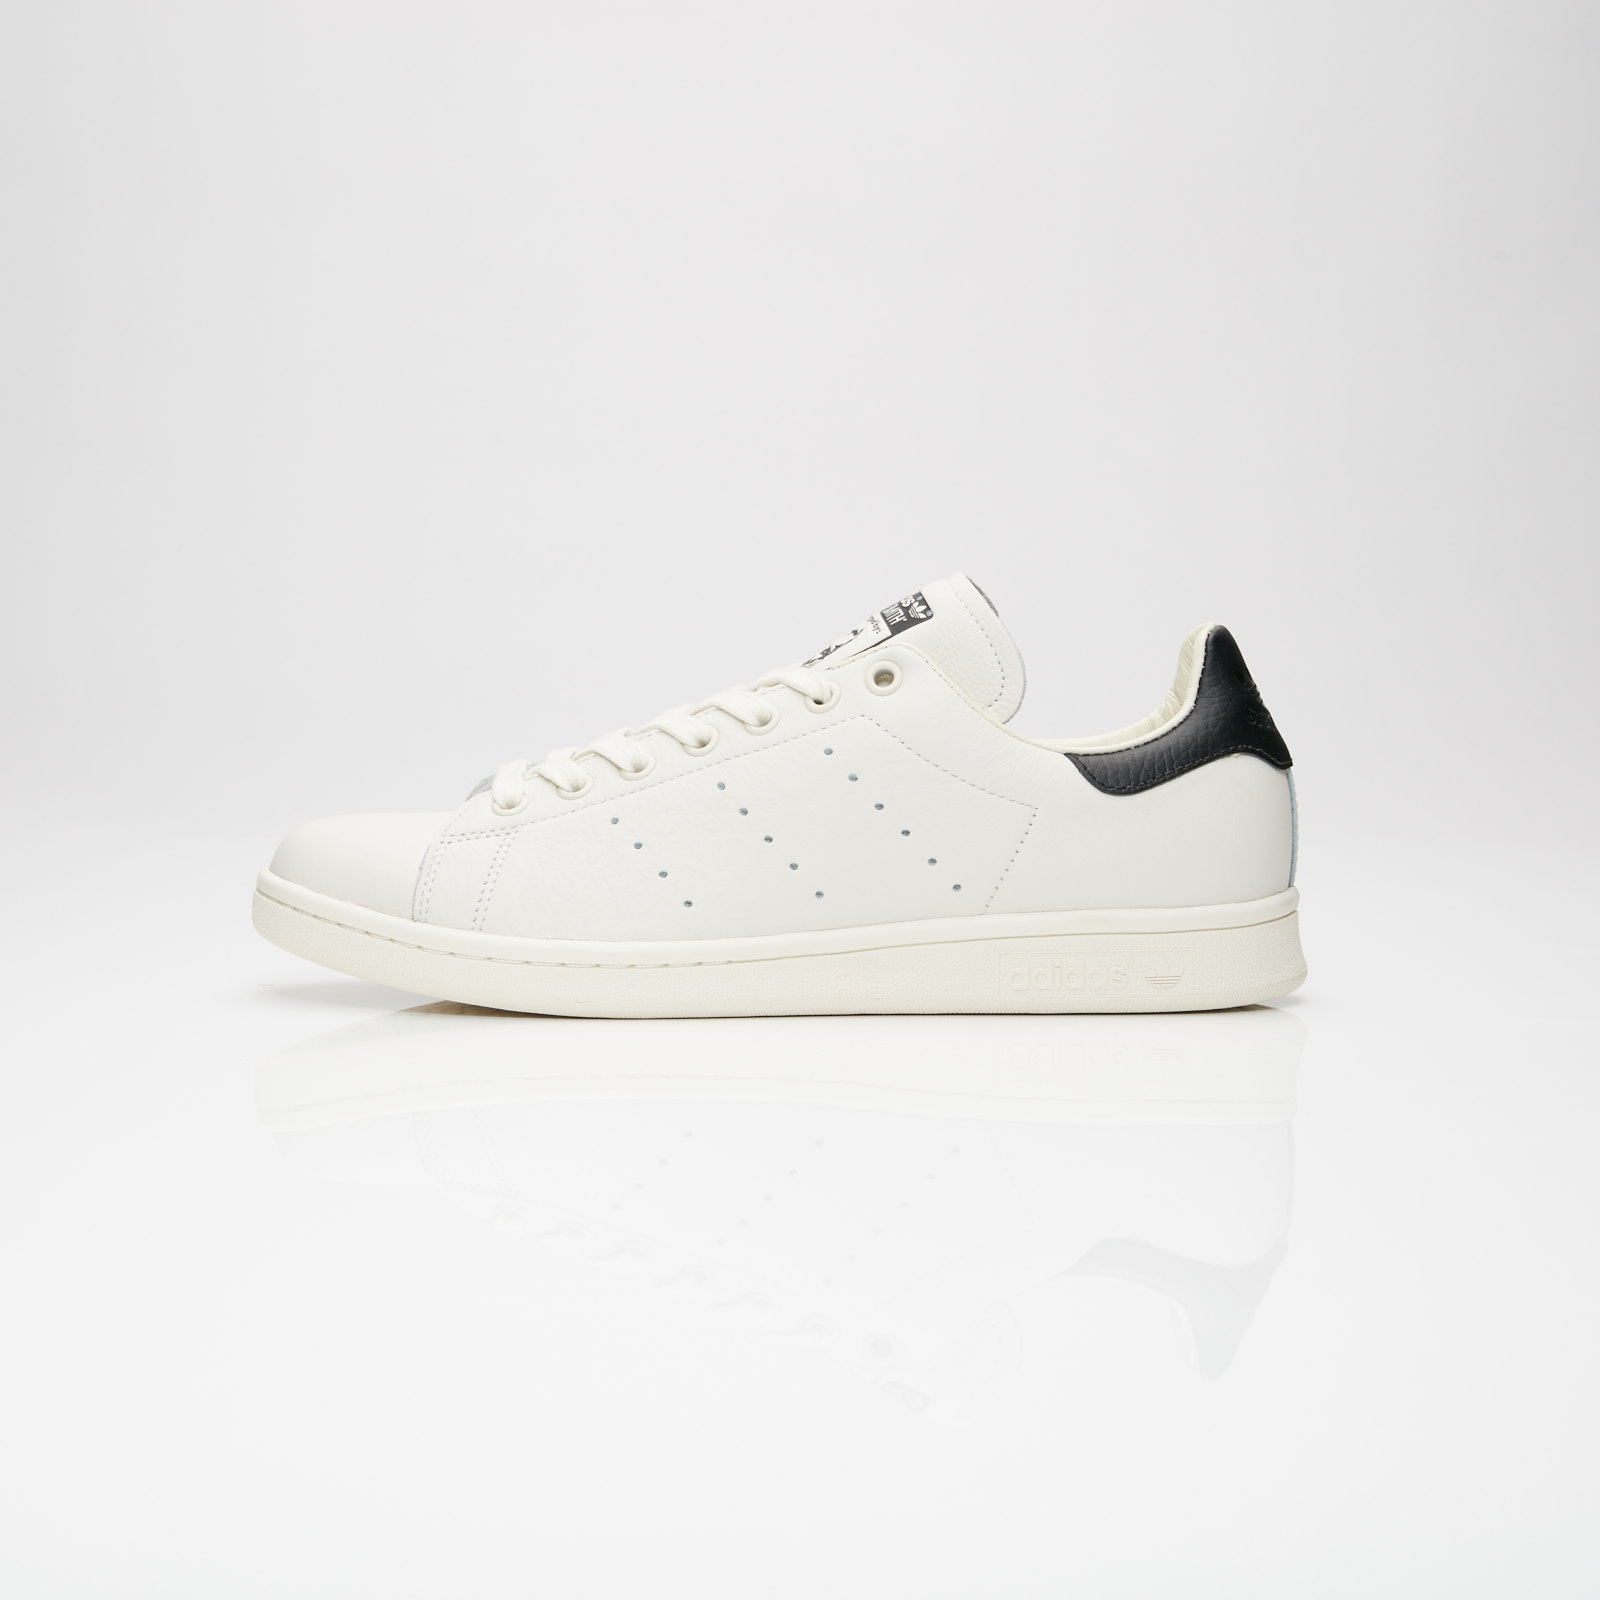 hot sale online 13083 ece34 adidas Stan Smith - B37897 - Sneakersnstuff | sneakers ...